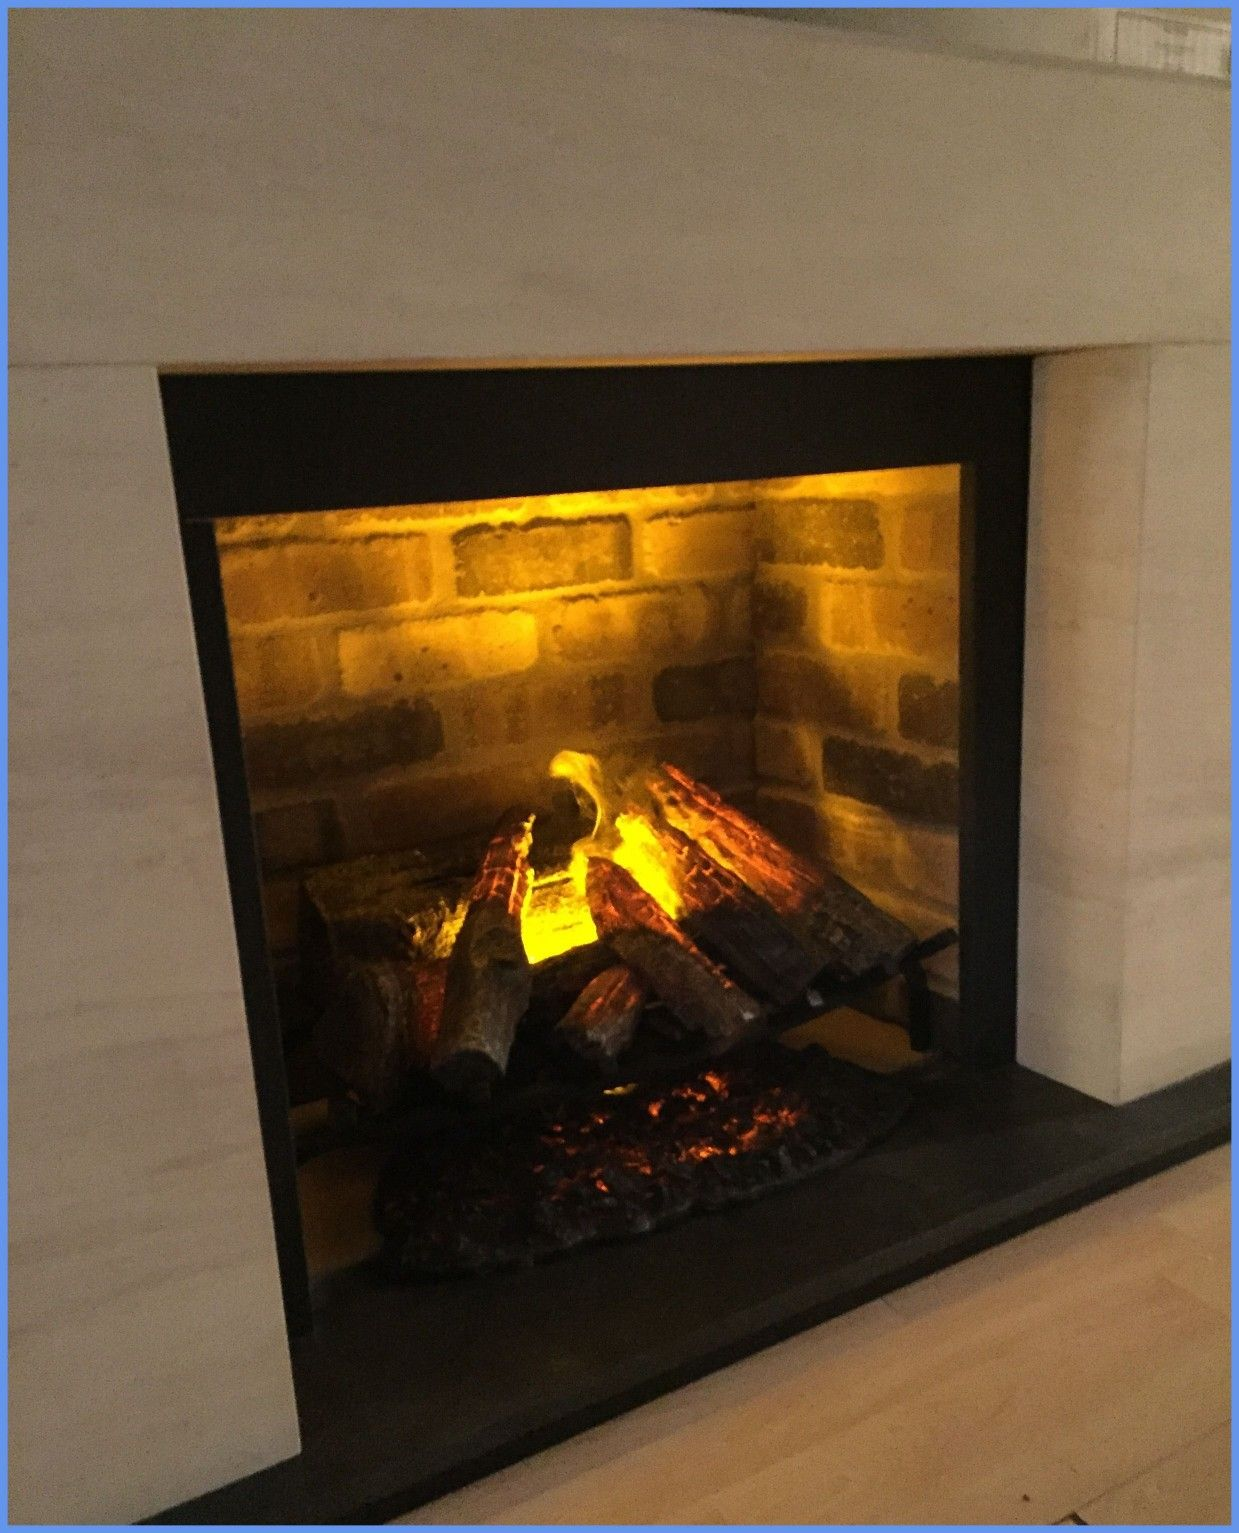 Adding A Fireplace Adding A Fireplace To A House Artificial Fireplace Best Fireplace Insert Best Gas Firepl